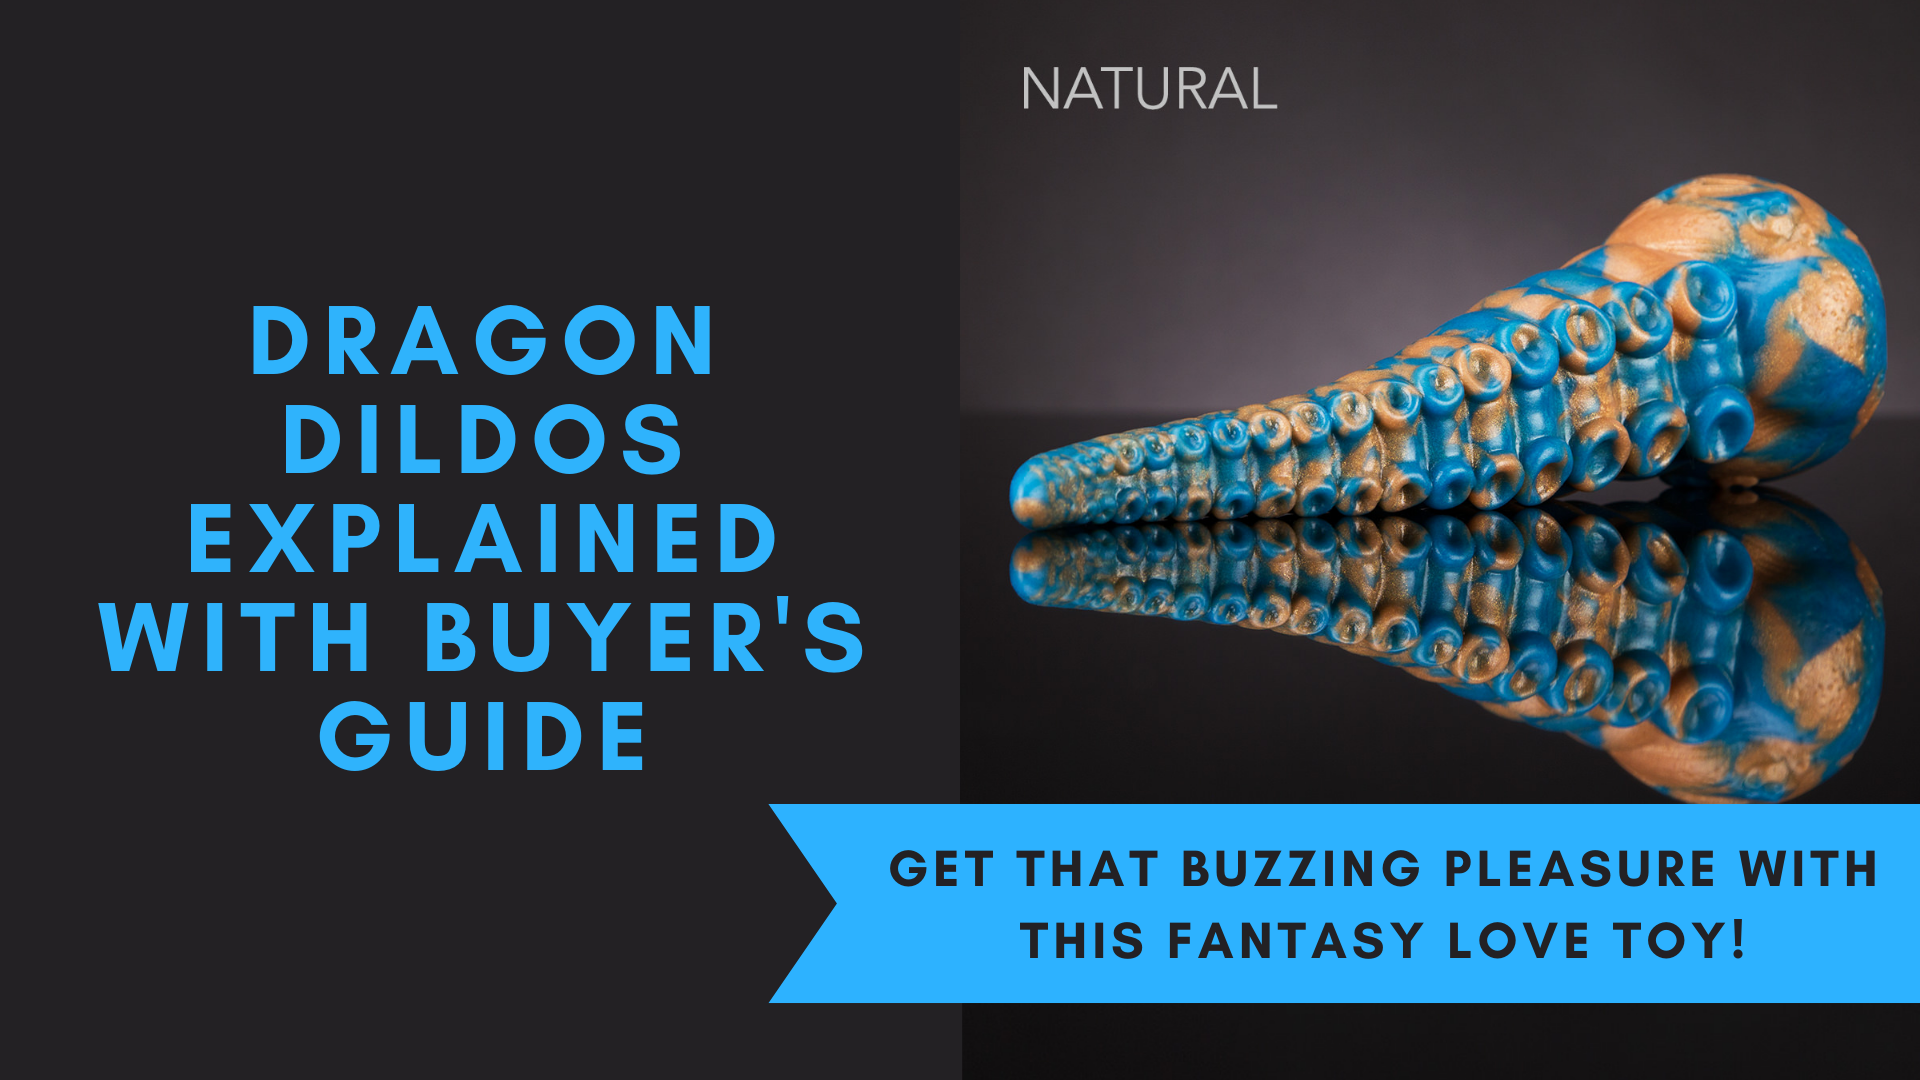 Dragon Dildos Explained With Buyer's Guide